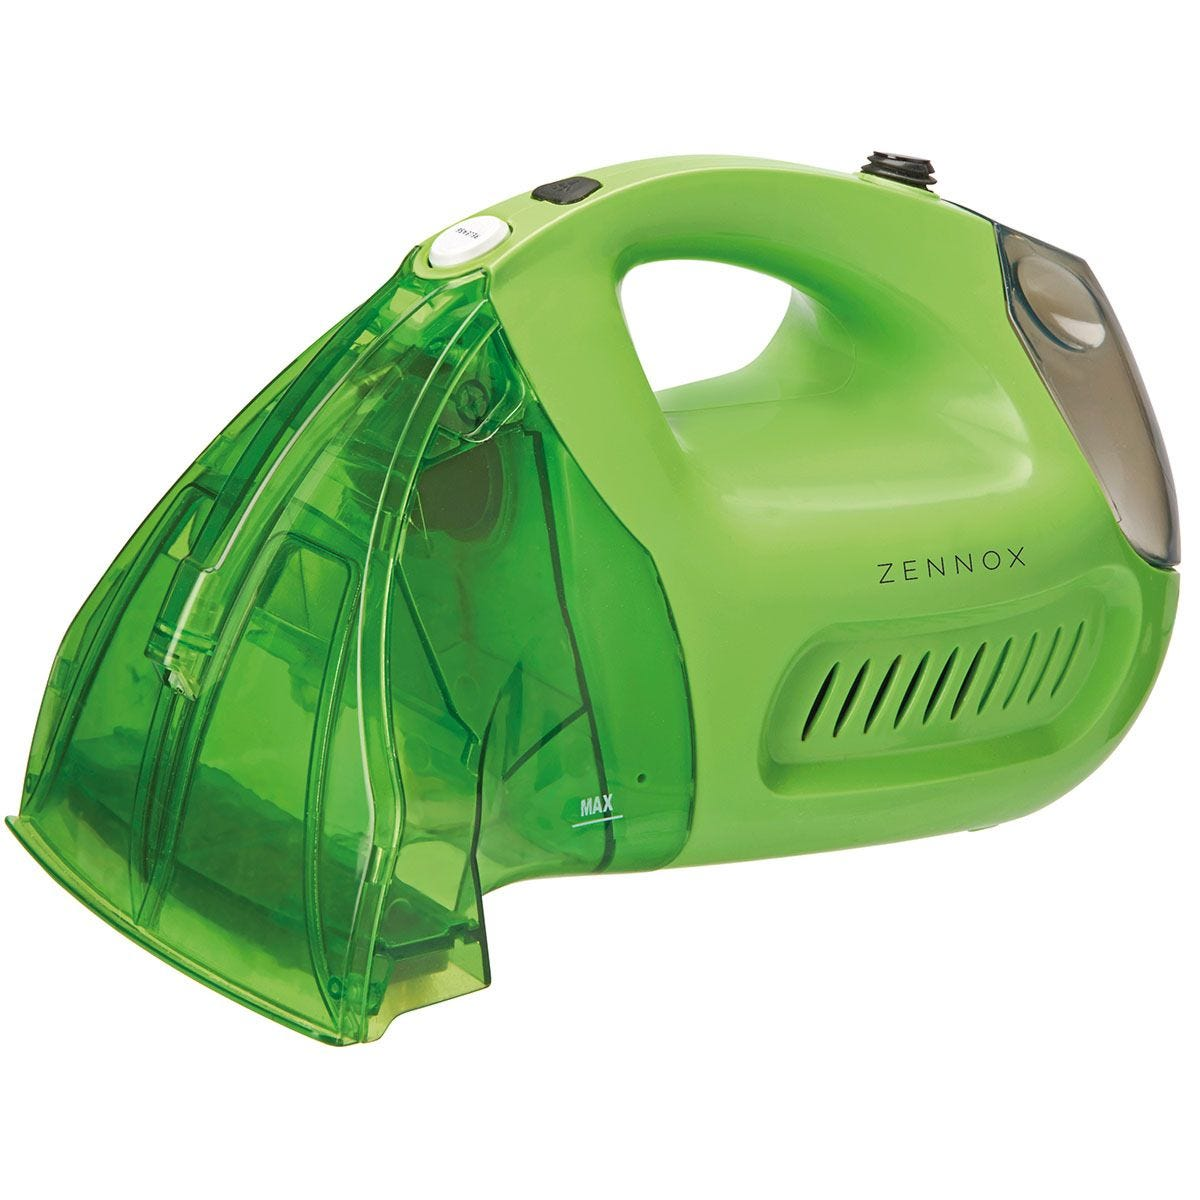 Zennox G4714 Handheld Carpet and Upholstery 0.3L Washer - Green